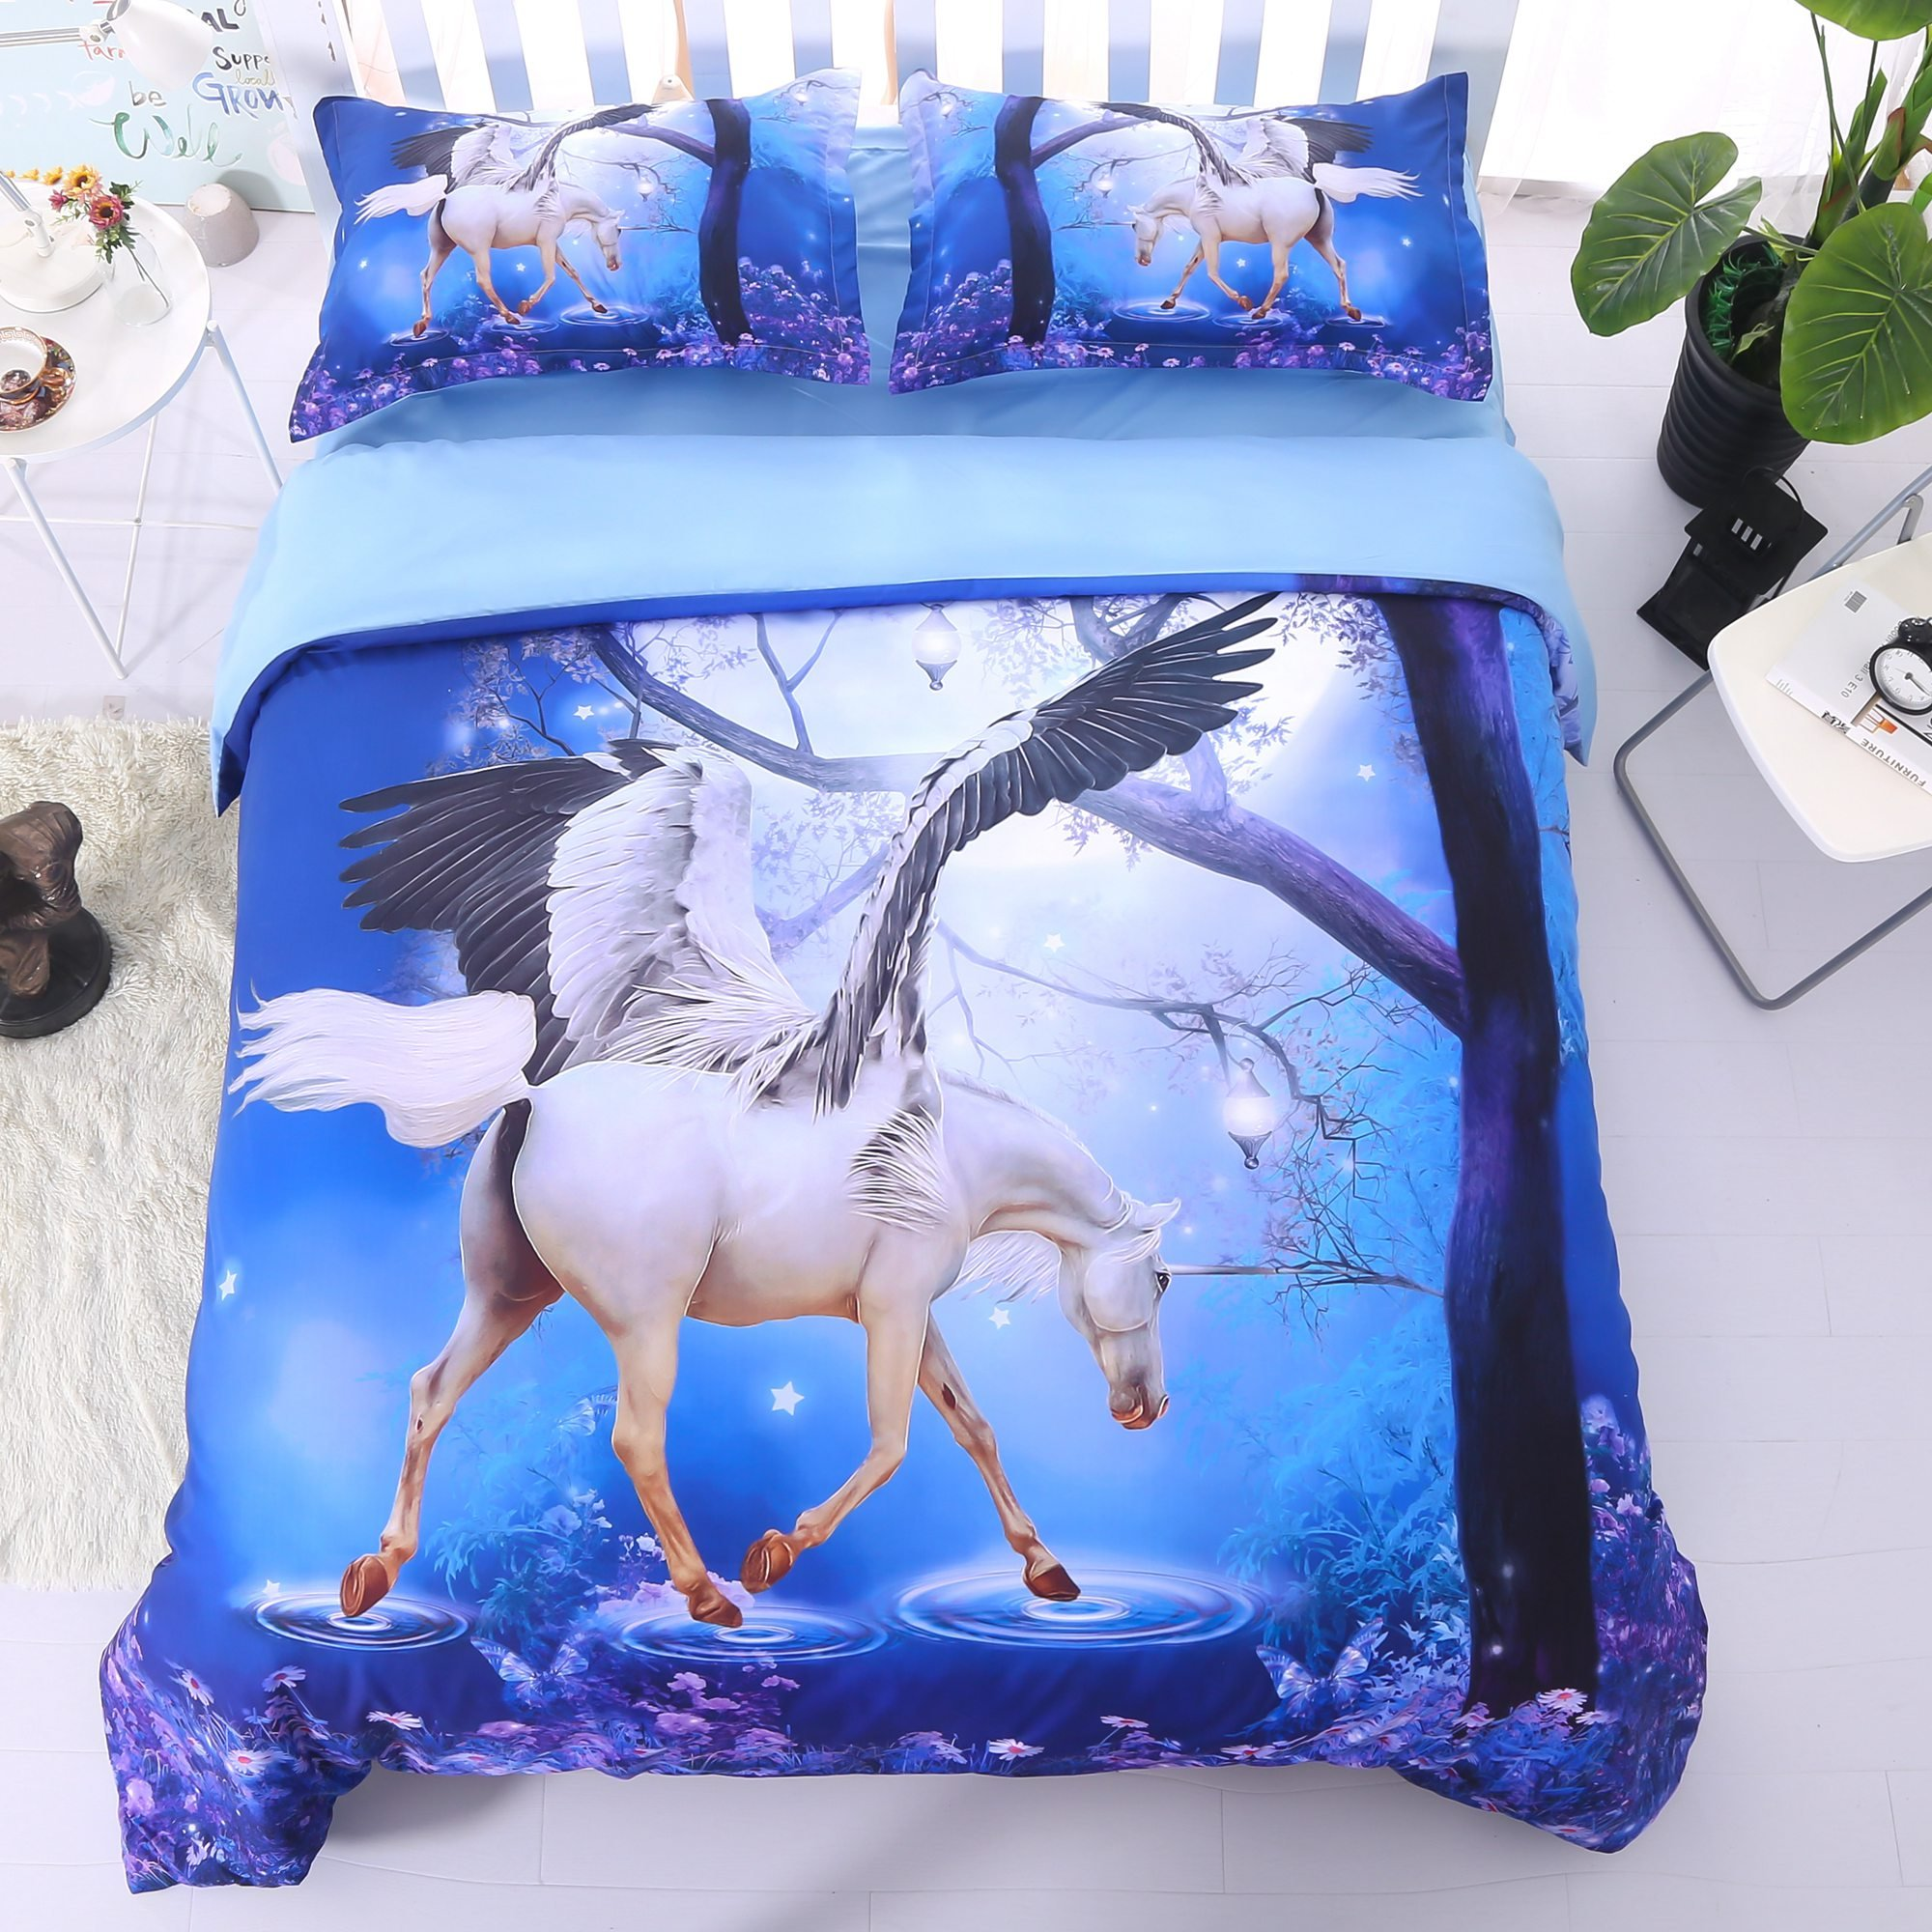 Alicemall 3D Unicorn Bedding Horse Comforter Set 3D Unicorn with Wings 5 Pieces Blue Comforter Set Digital Bedding Set, Twin Size (2 Pillowcases, Flat Sheet, Comforter, Duvet Cover) (Twin, Blue)